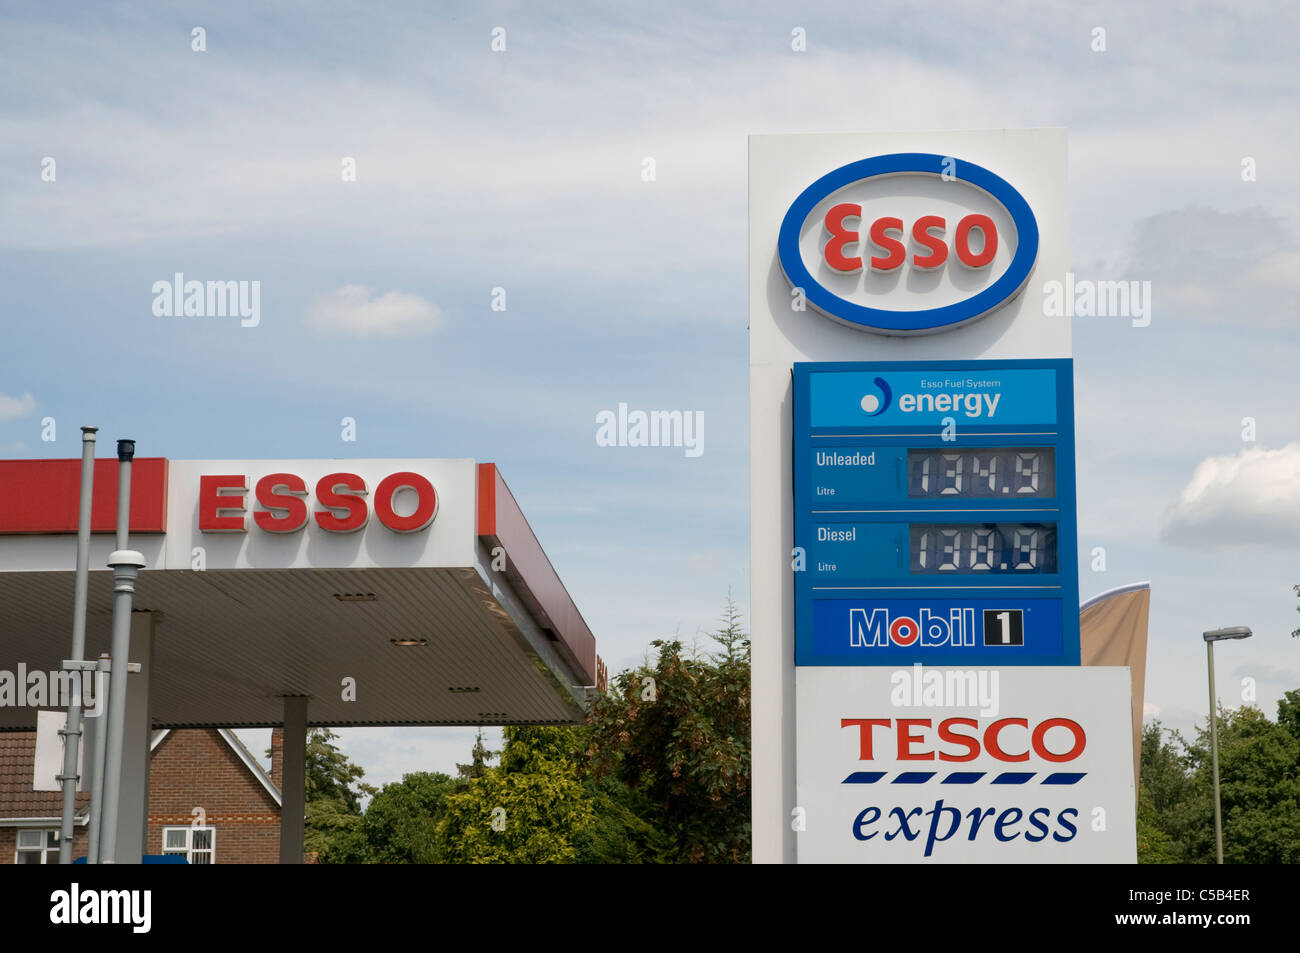 Esso petrol station pricing board 2011 - Stock Image